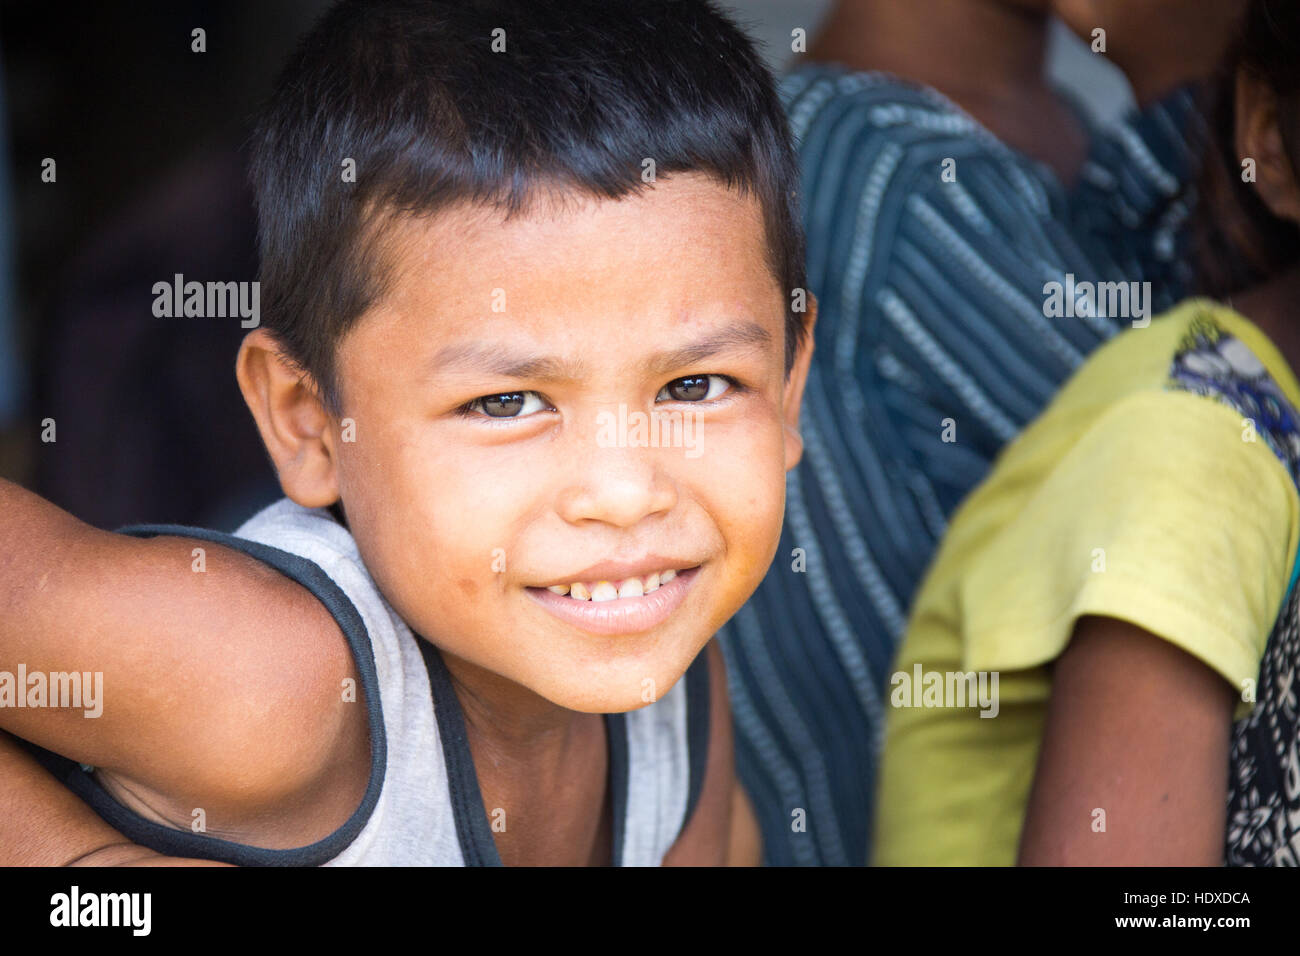 Young boy in a small village in the Terai region of Nepal - Stock Image